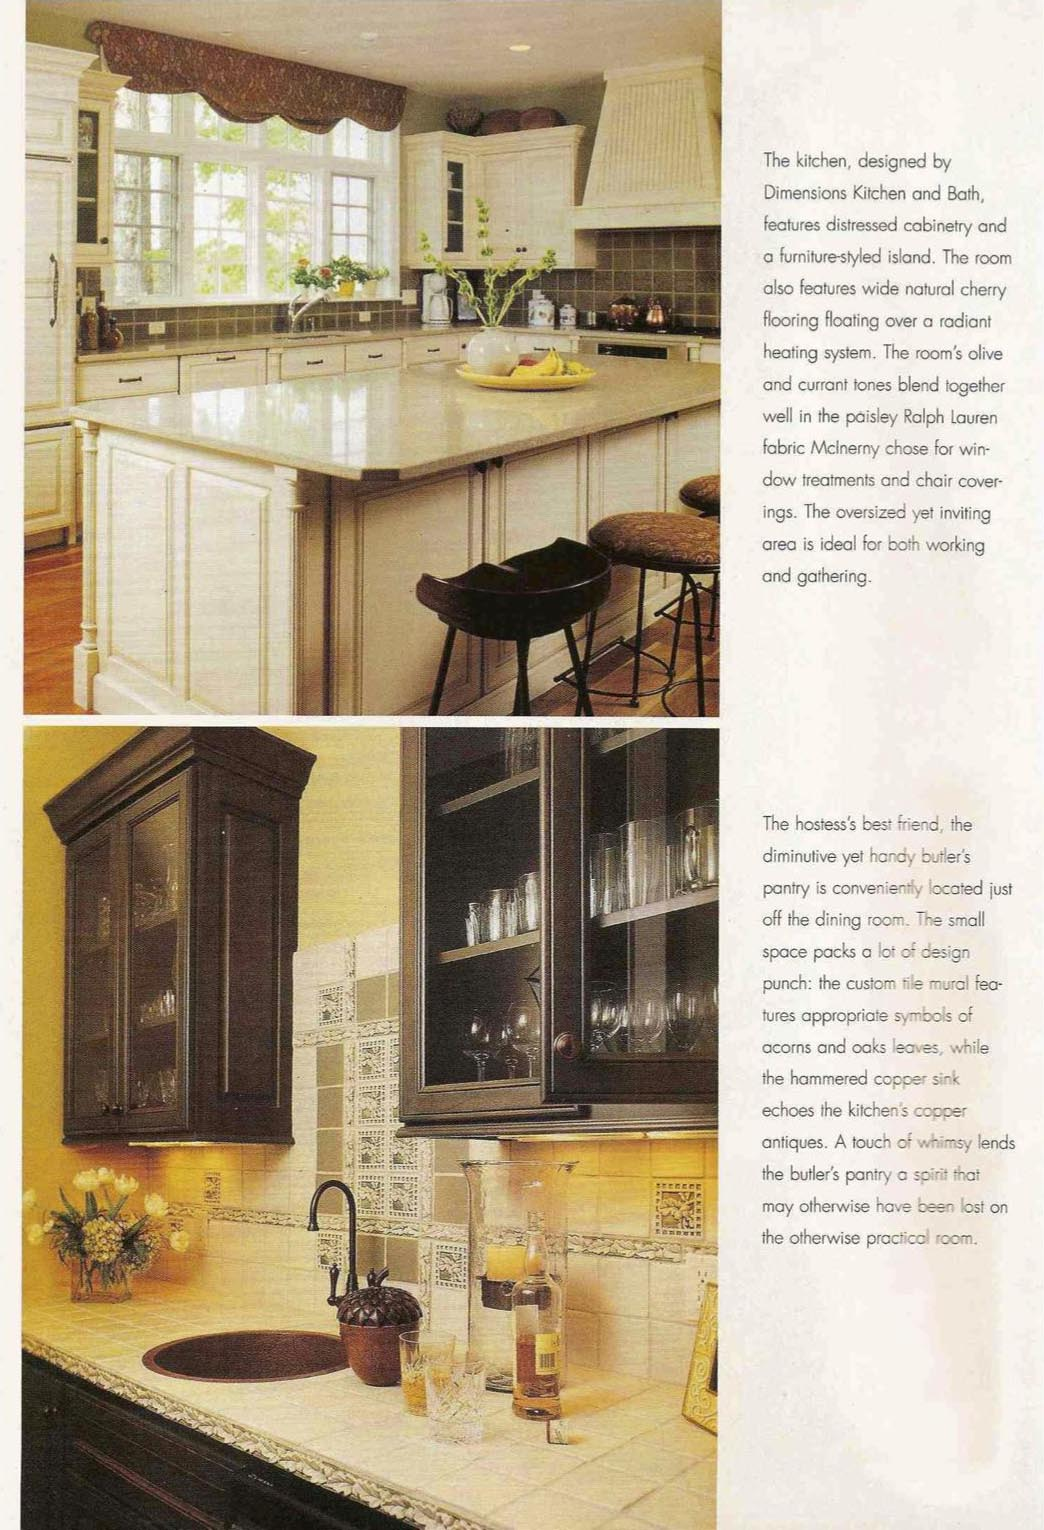 2002 Cosmopolitan Home Grand Rapids Sears Architects